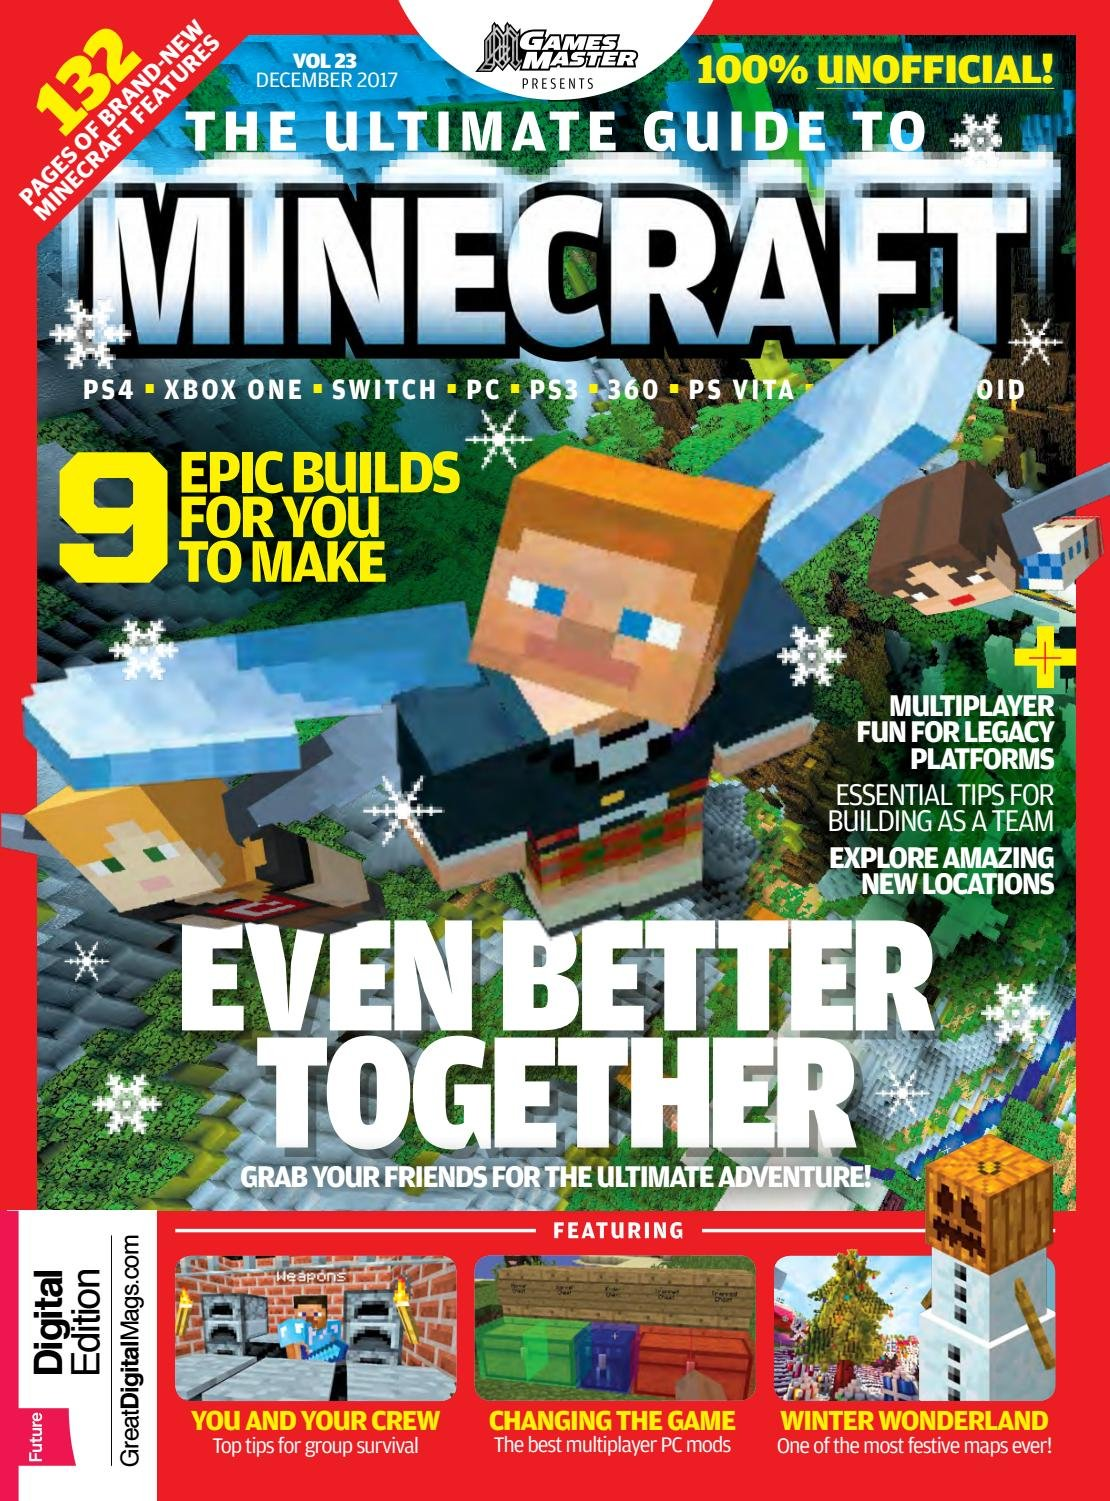 GamesMaster Presents: The Ultimate Guide to Minecraft Vol.23 (December 2017)